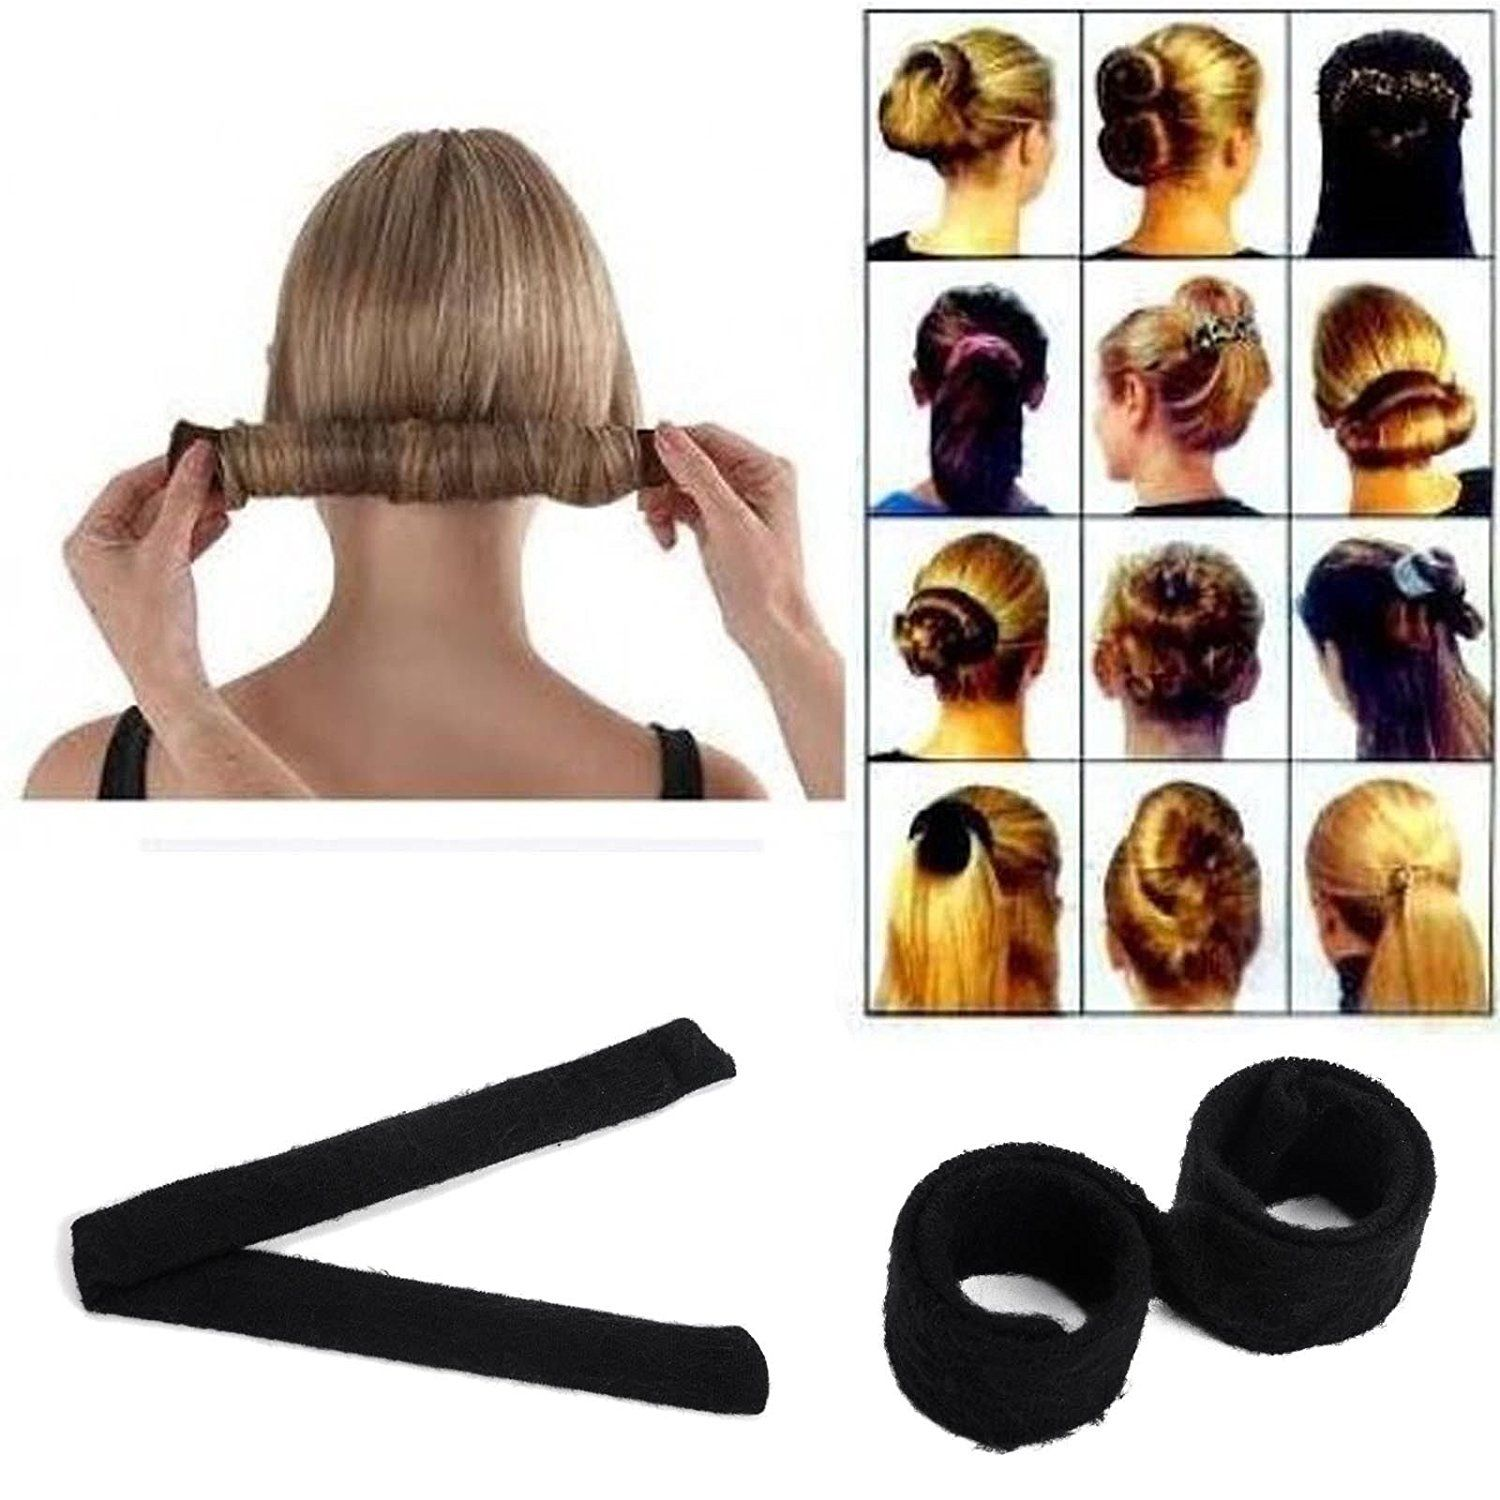 Hair Bun Updo Fold Wrap And Snap Styling Tool For Girl Hair Style Black See This Great Product Diy Hair Bun Hair Bun Maker Bun Hairstyles